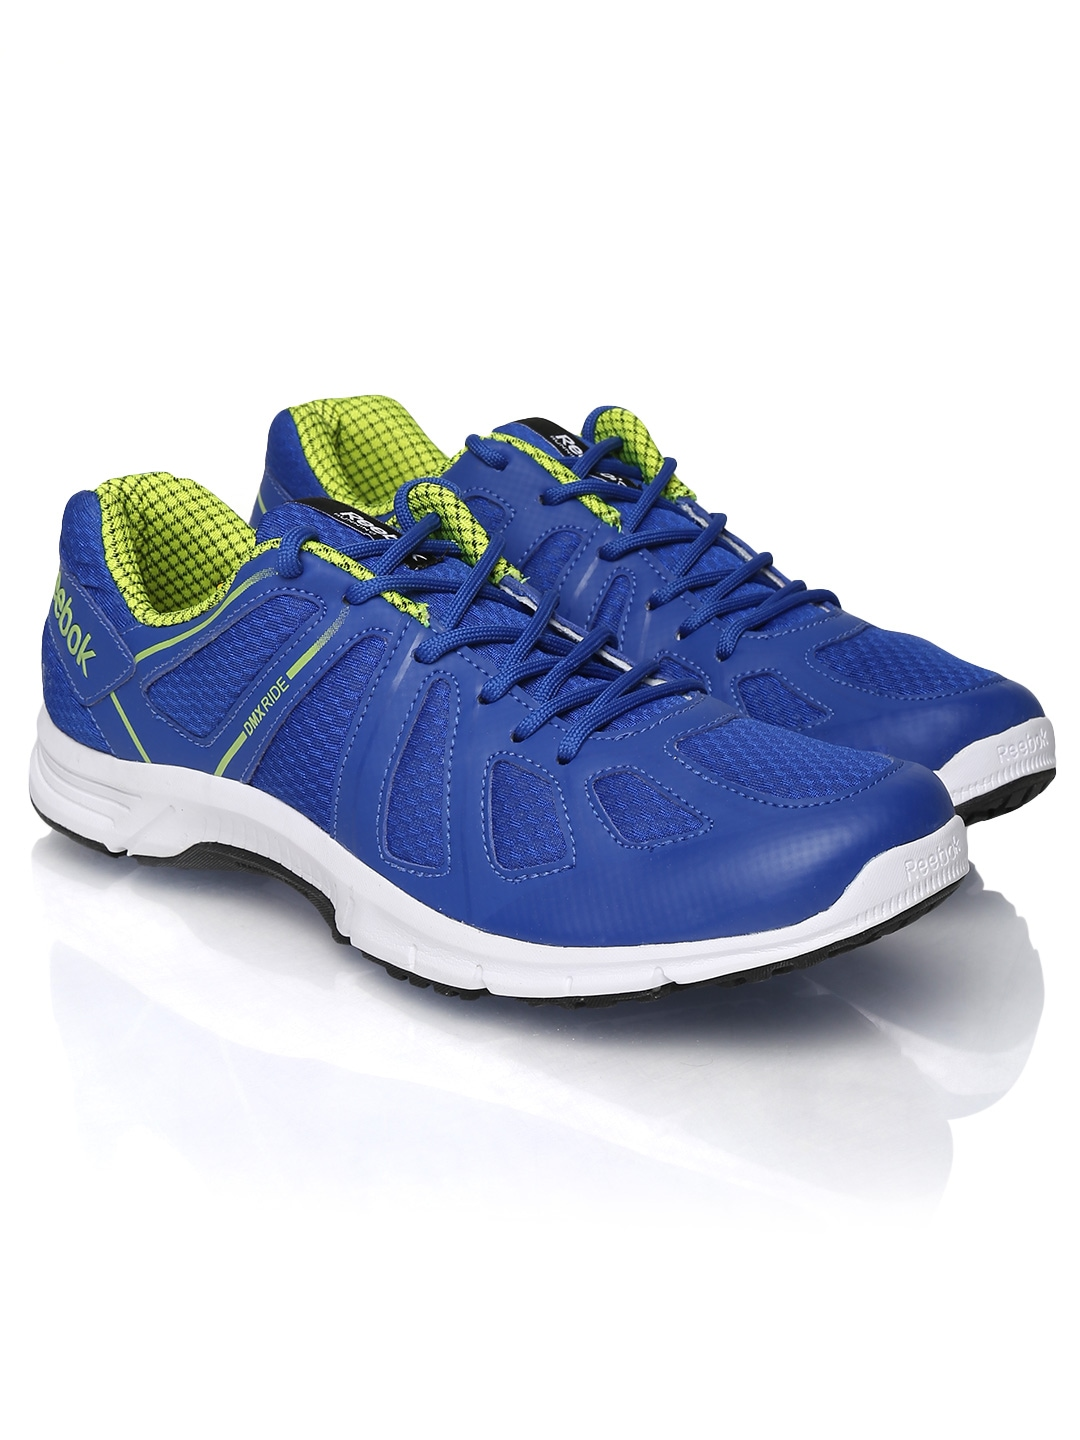 myntra reebok blue dual flight lp running shoes 655918